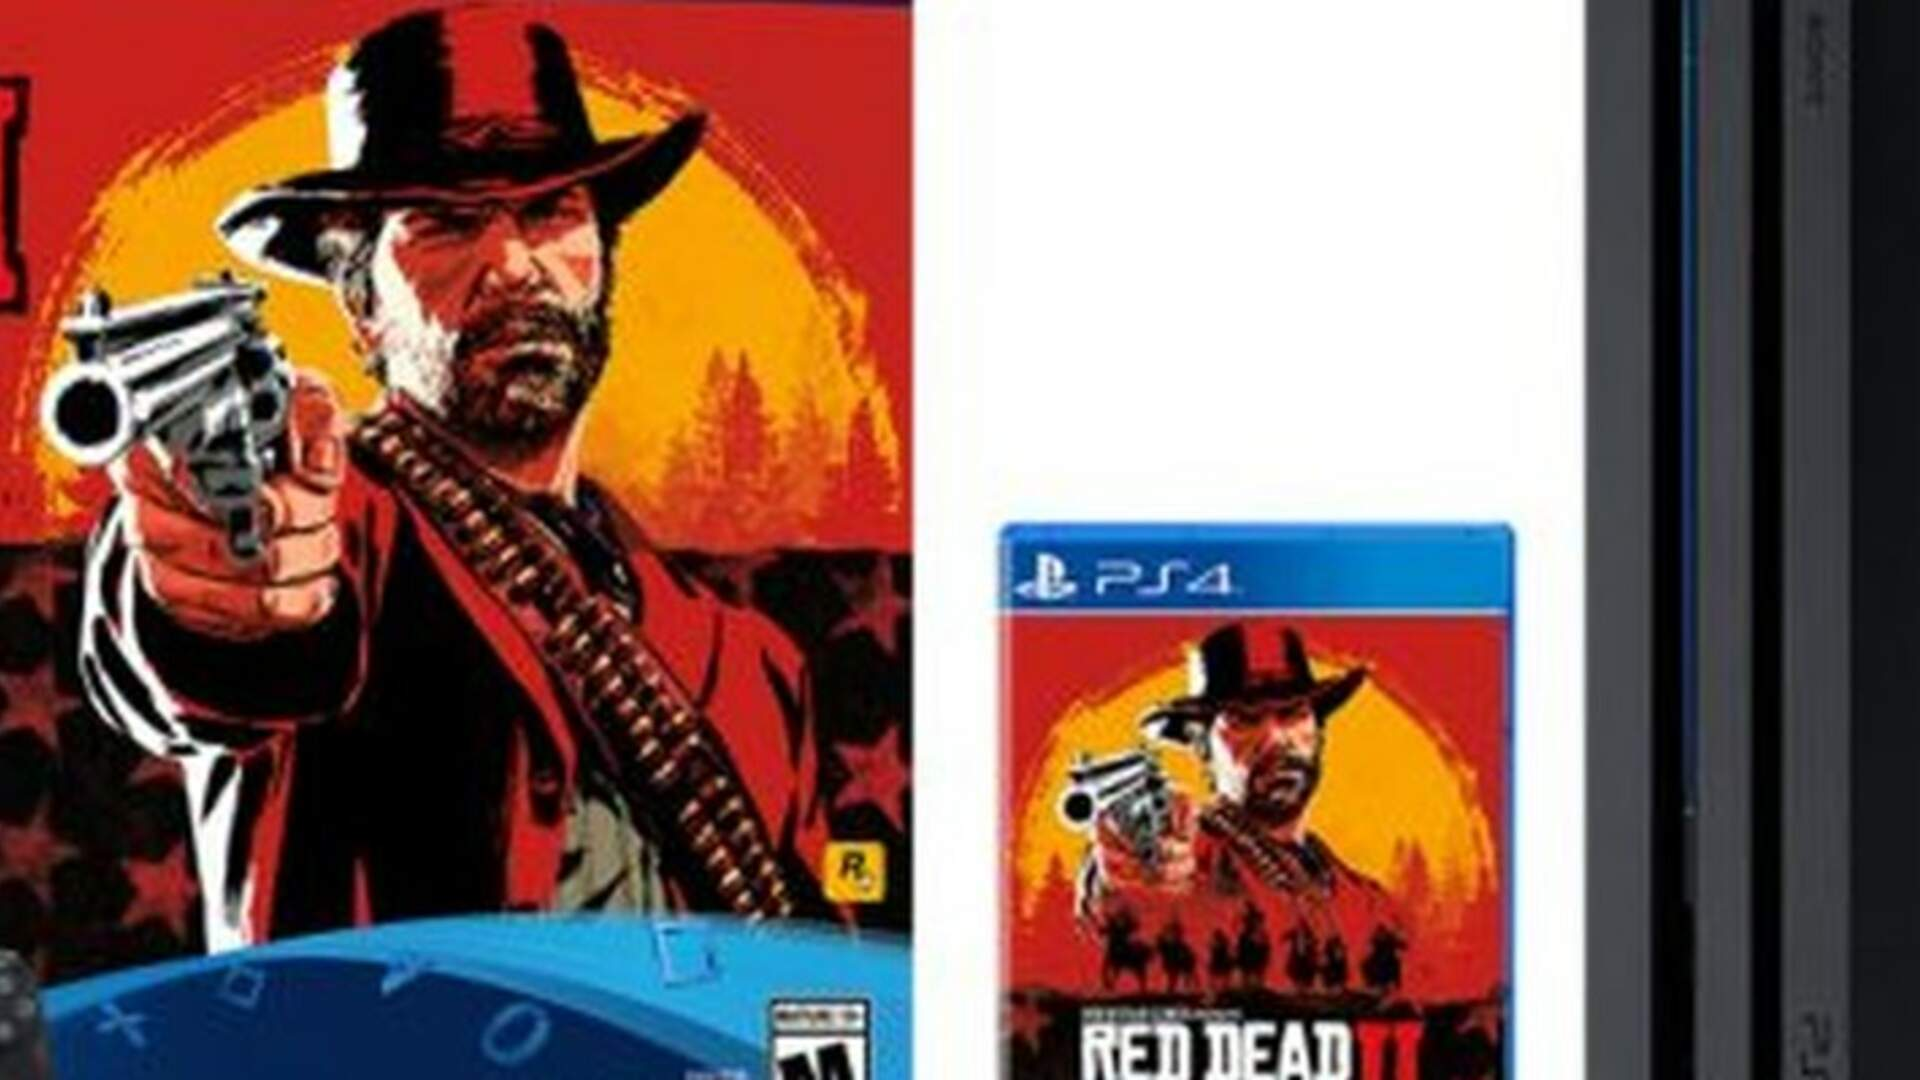 Red Dead Redemption 2 PS4 Pro Pre-Order Details (US and UK)